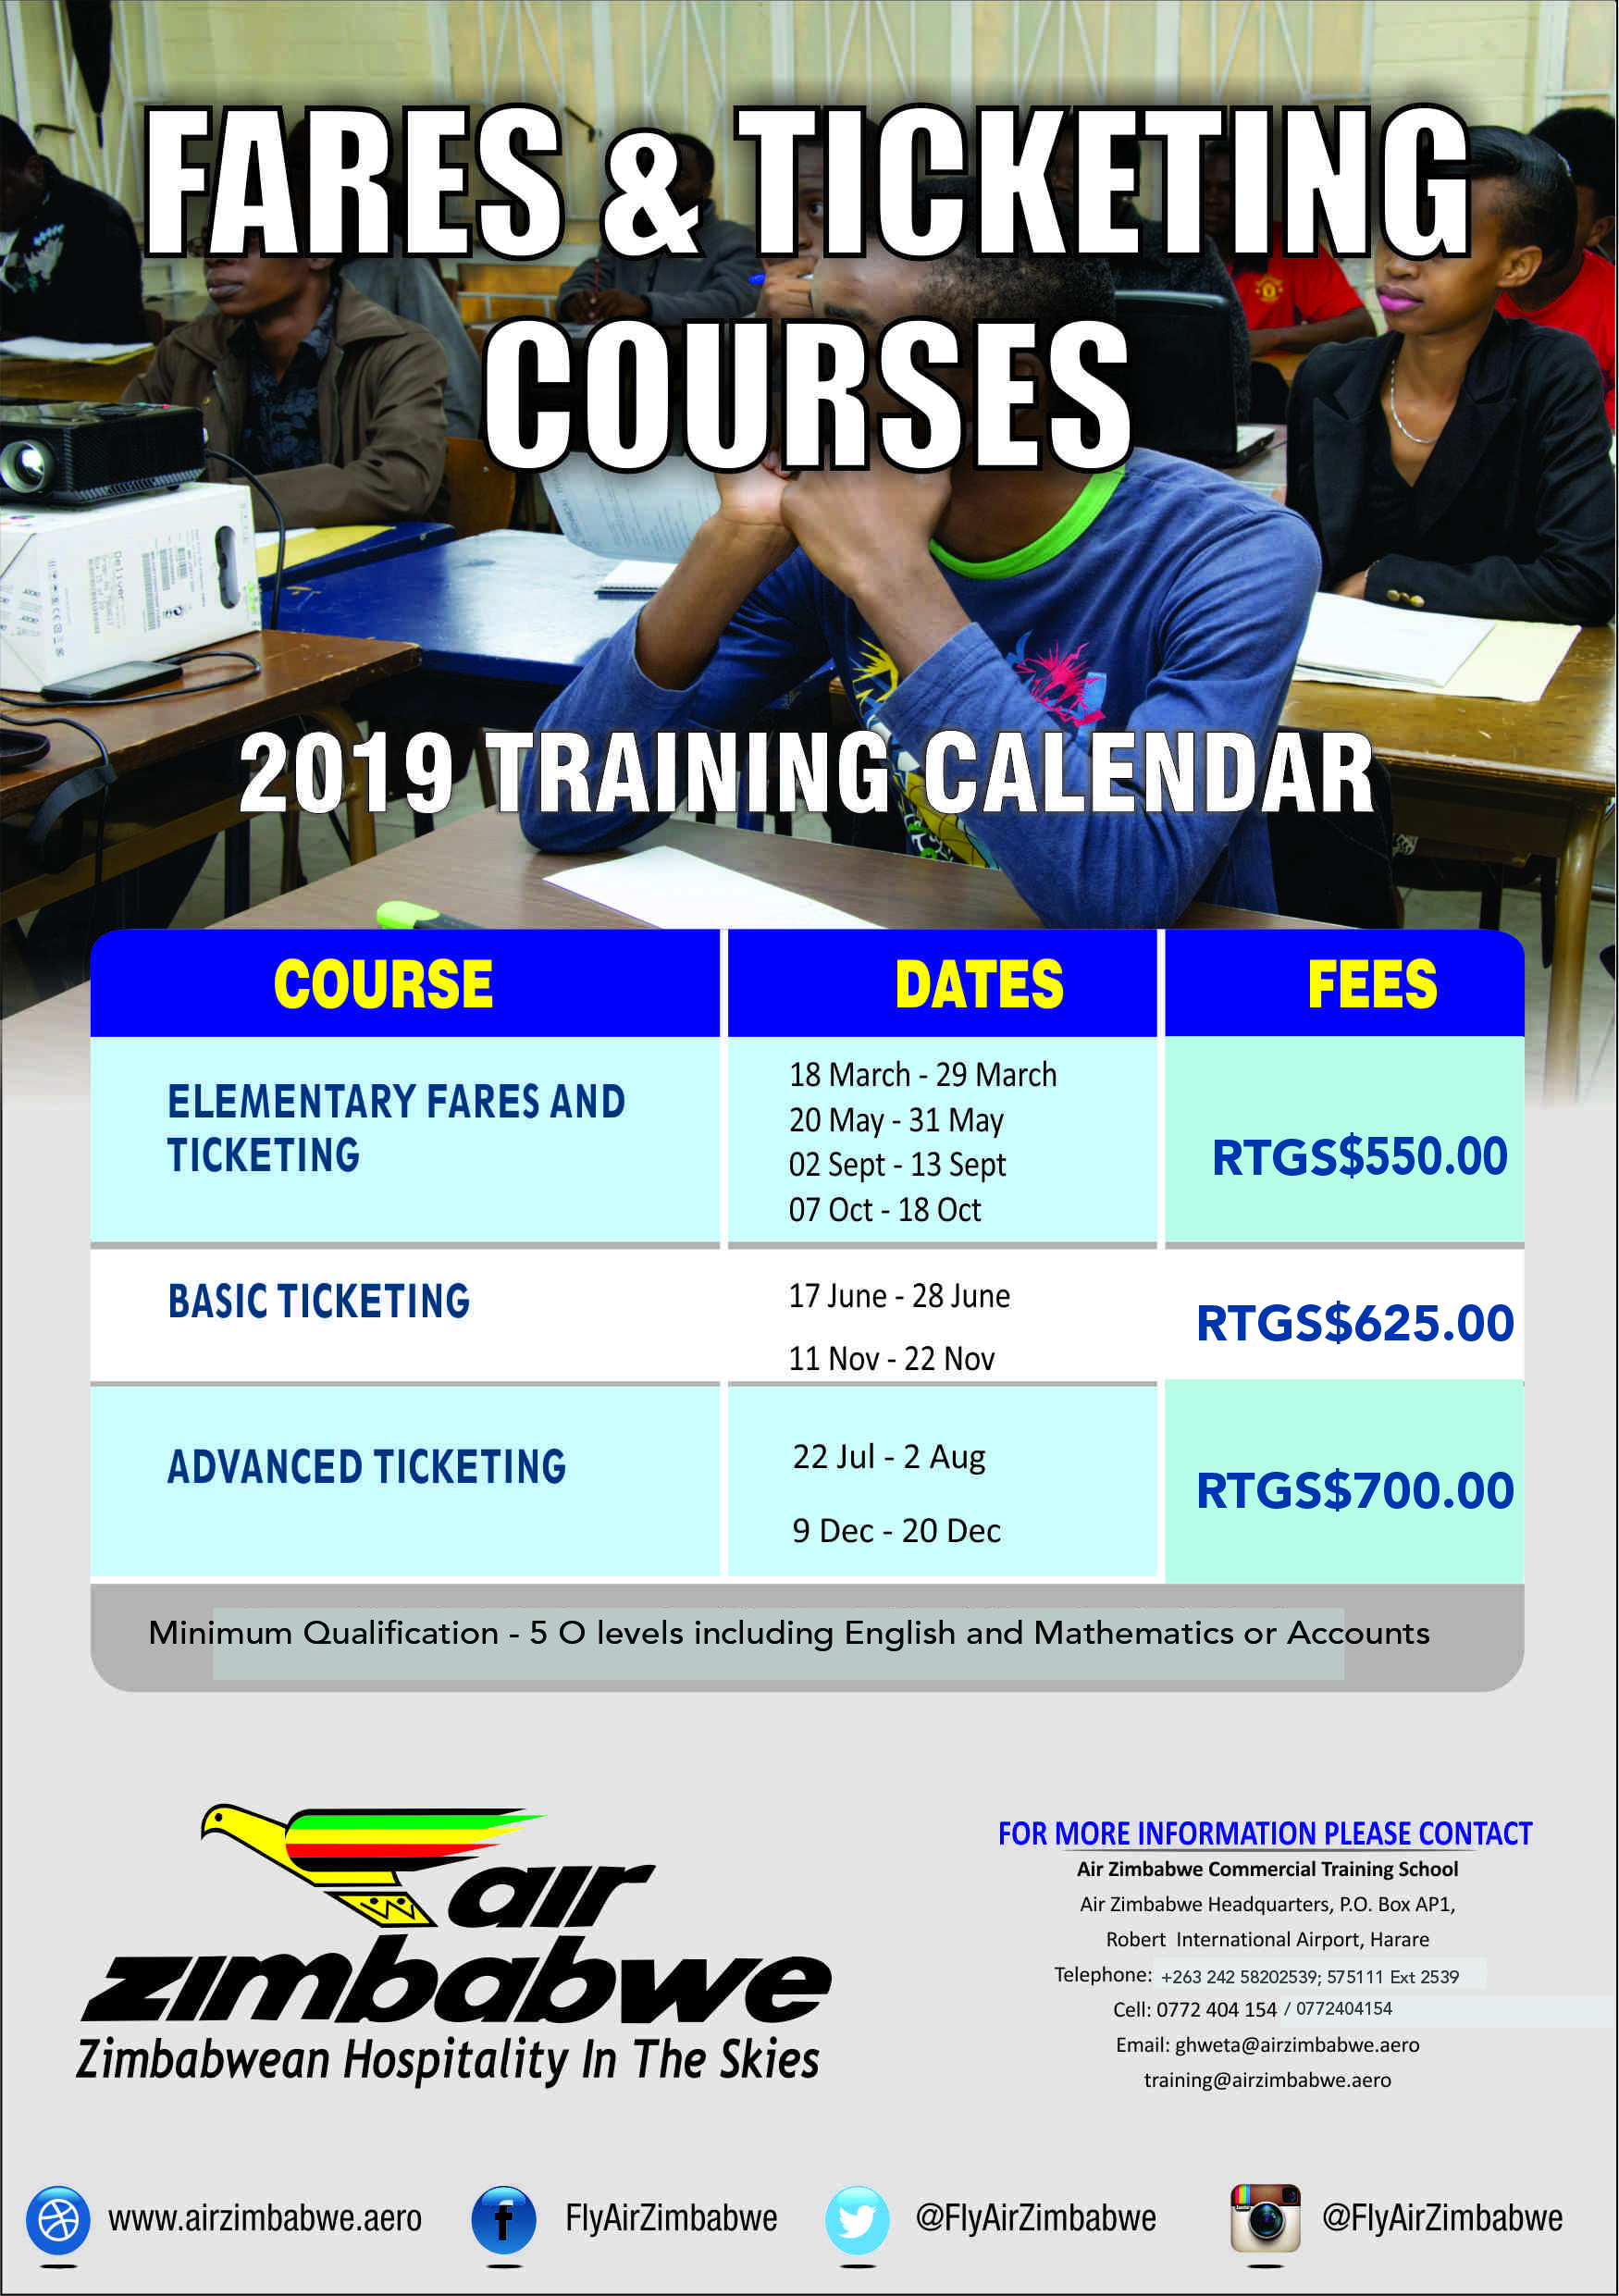 Fares and Ticketing Courses 2019 Training Calendar